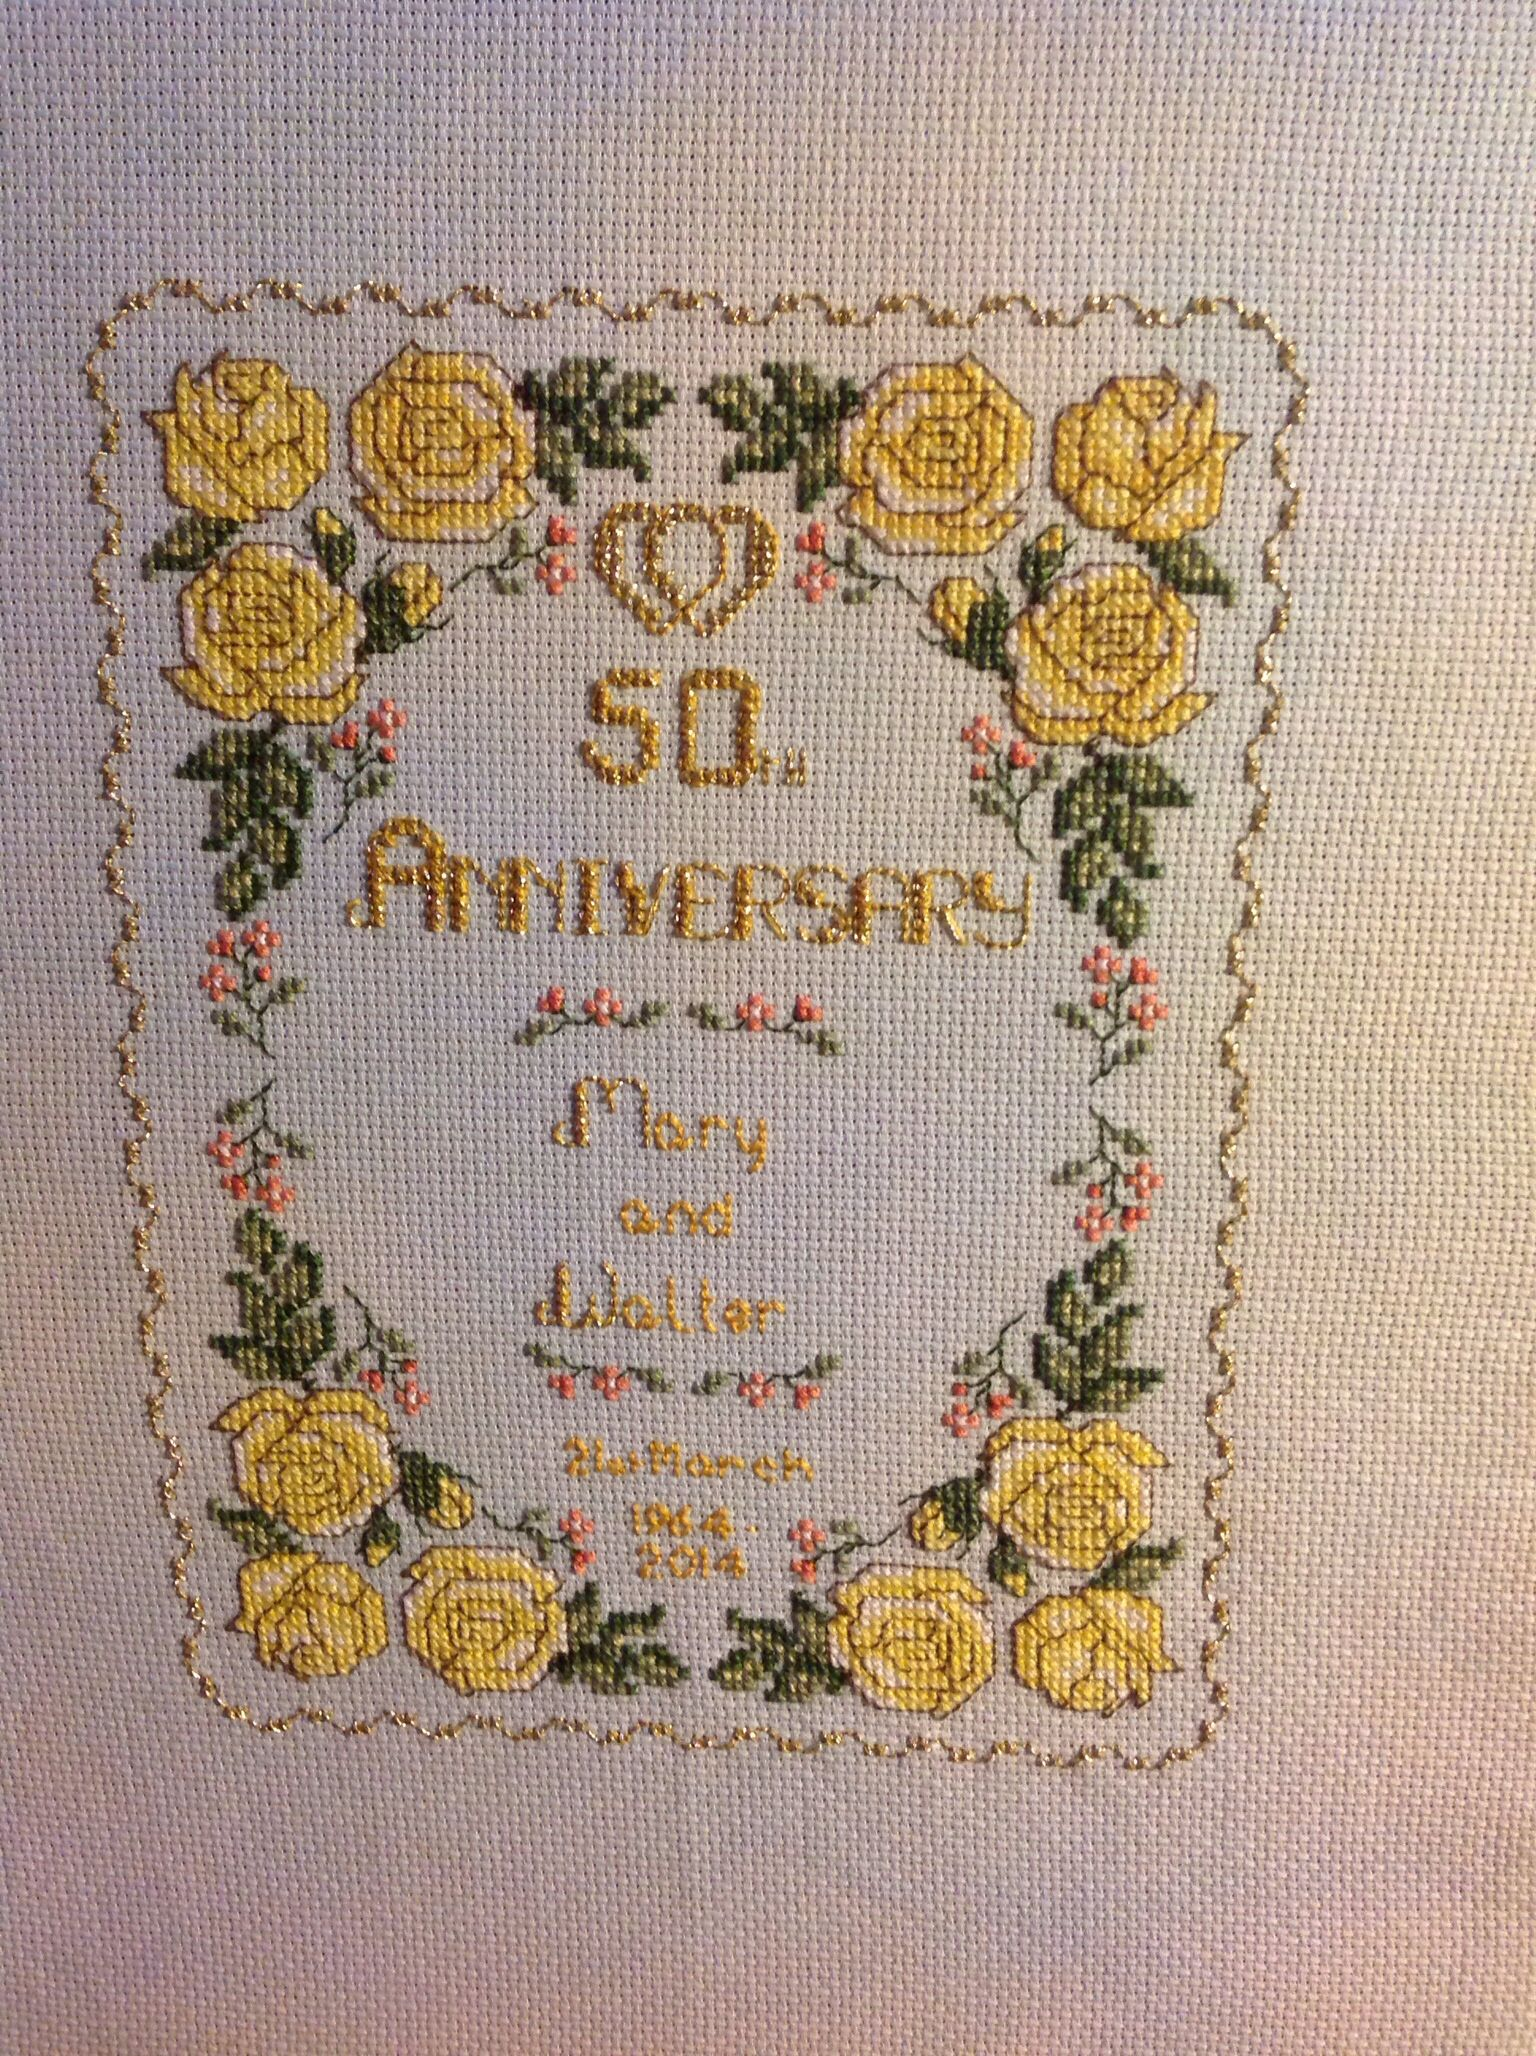 Walter and mary s golden wedding sampler cross stitch